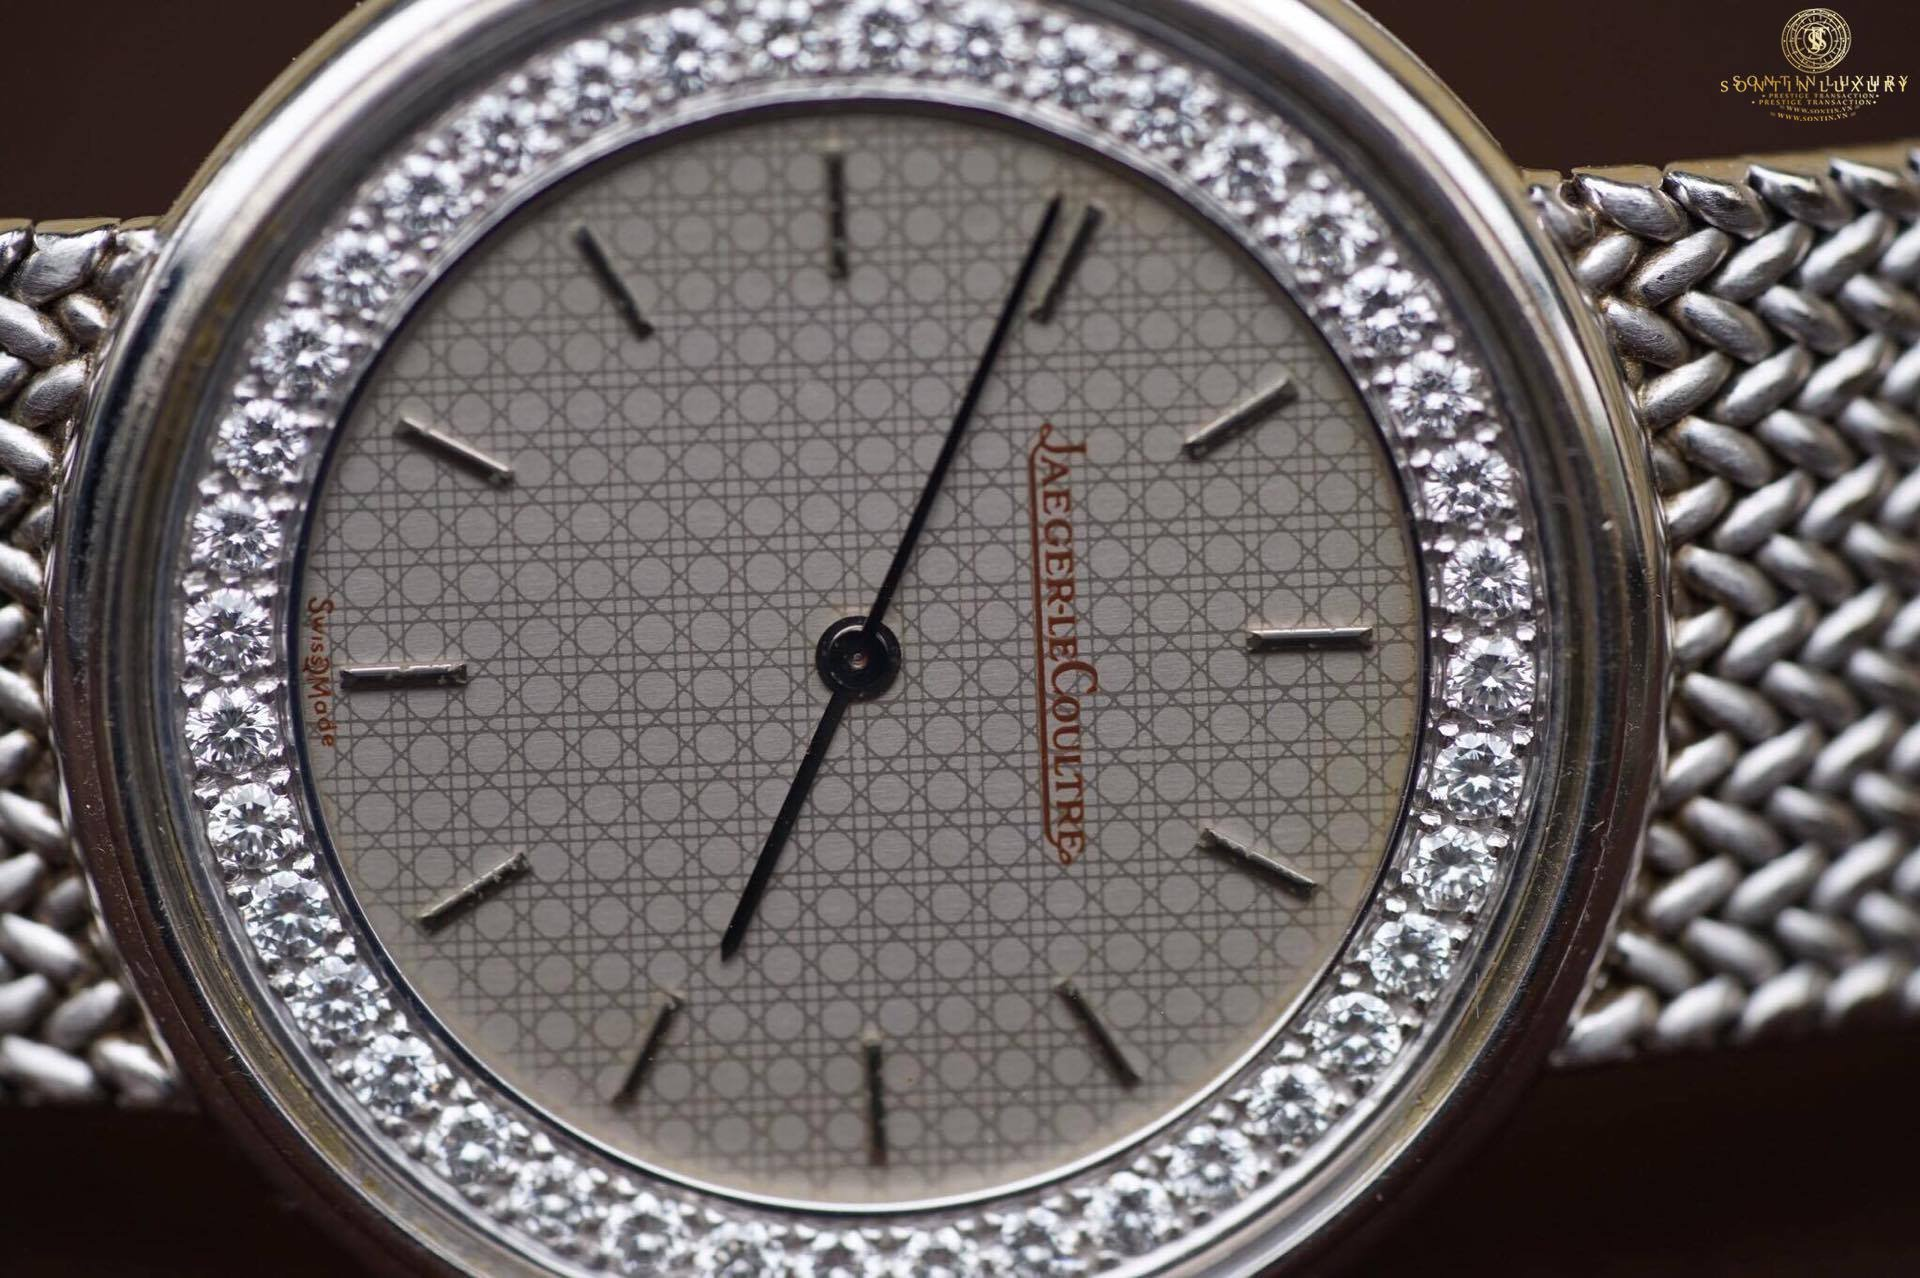 Jaeger-LeCoultre White Gold Diamond Original